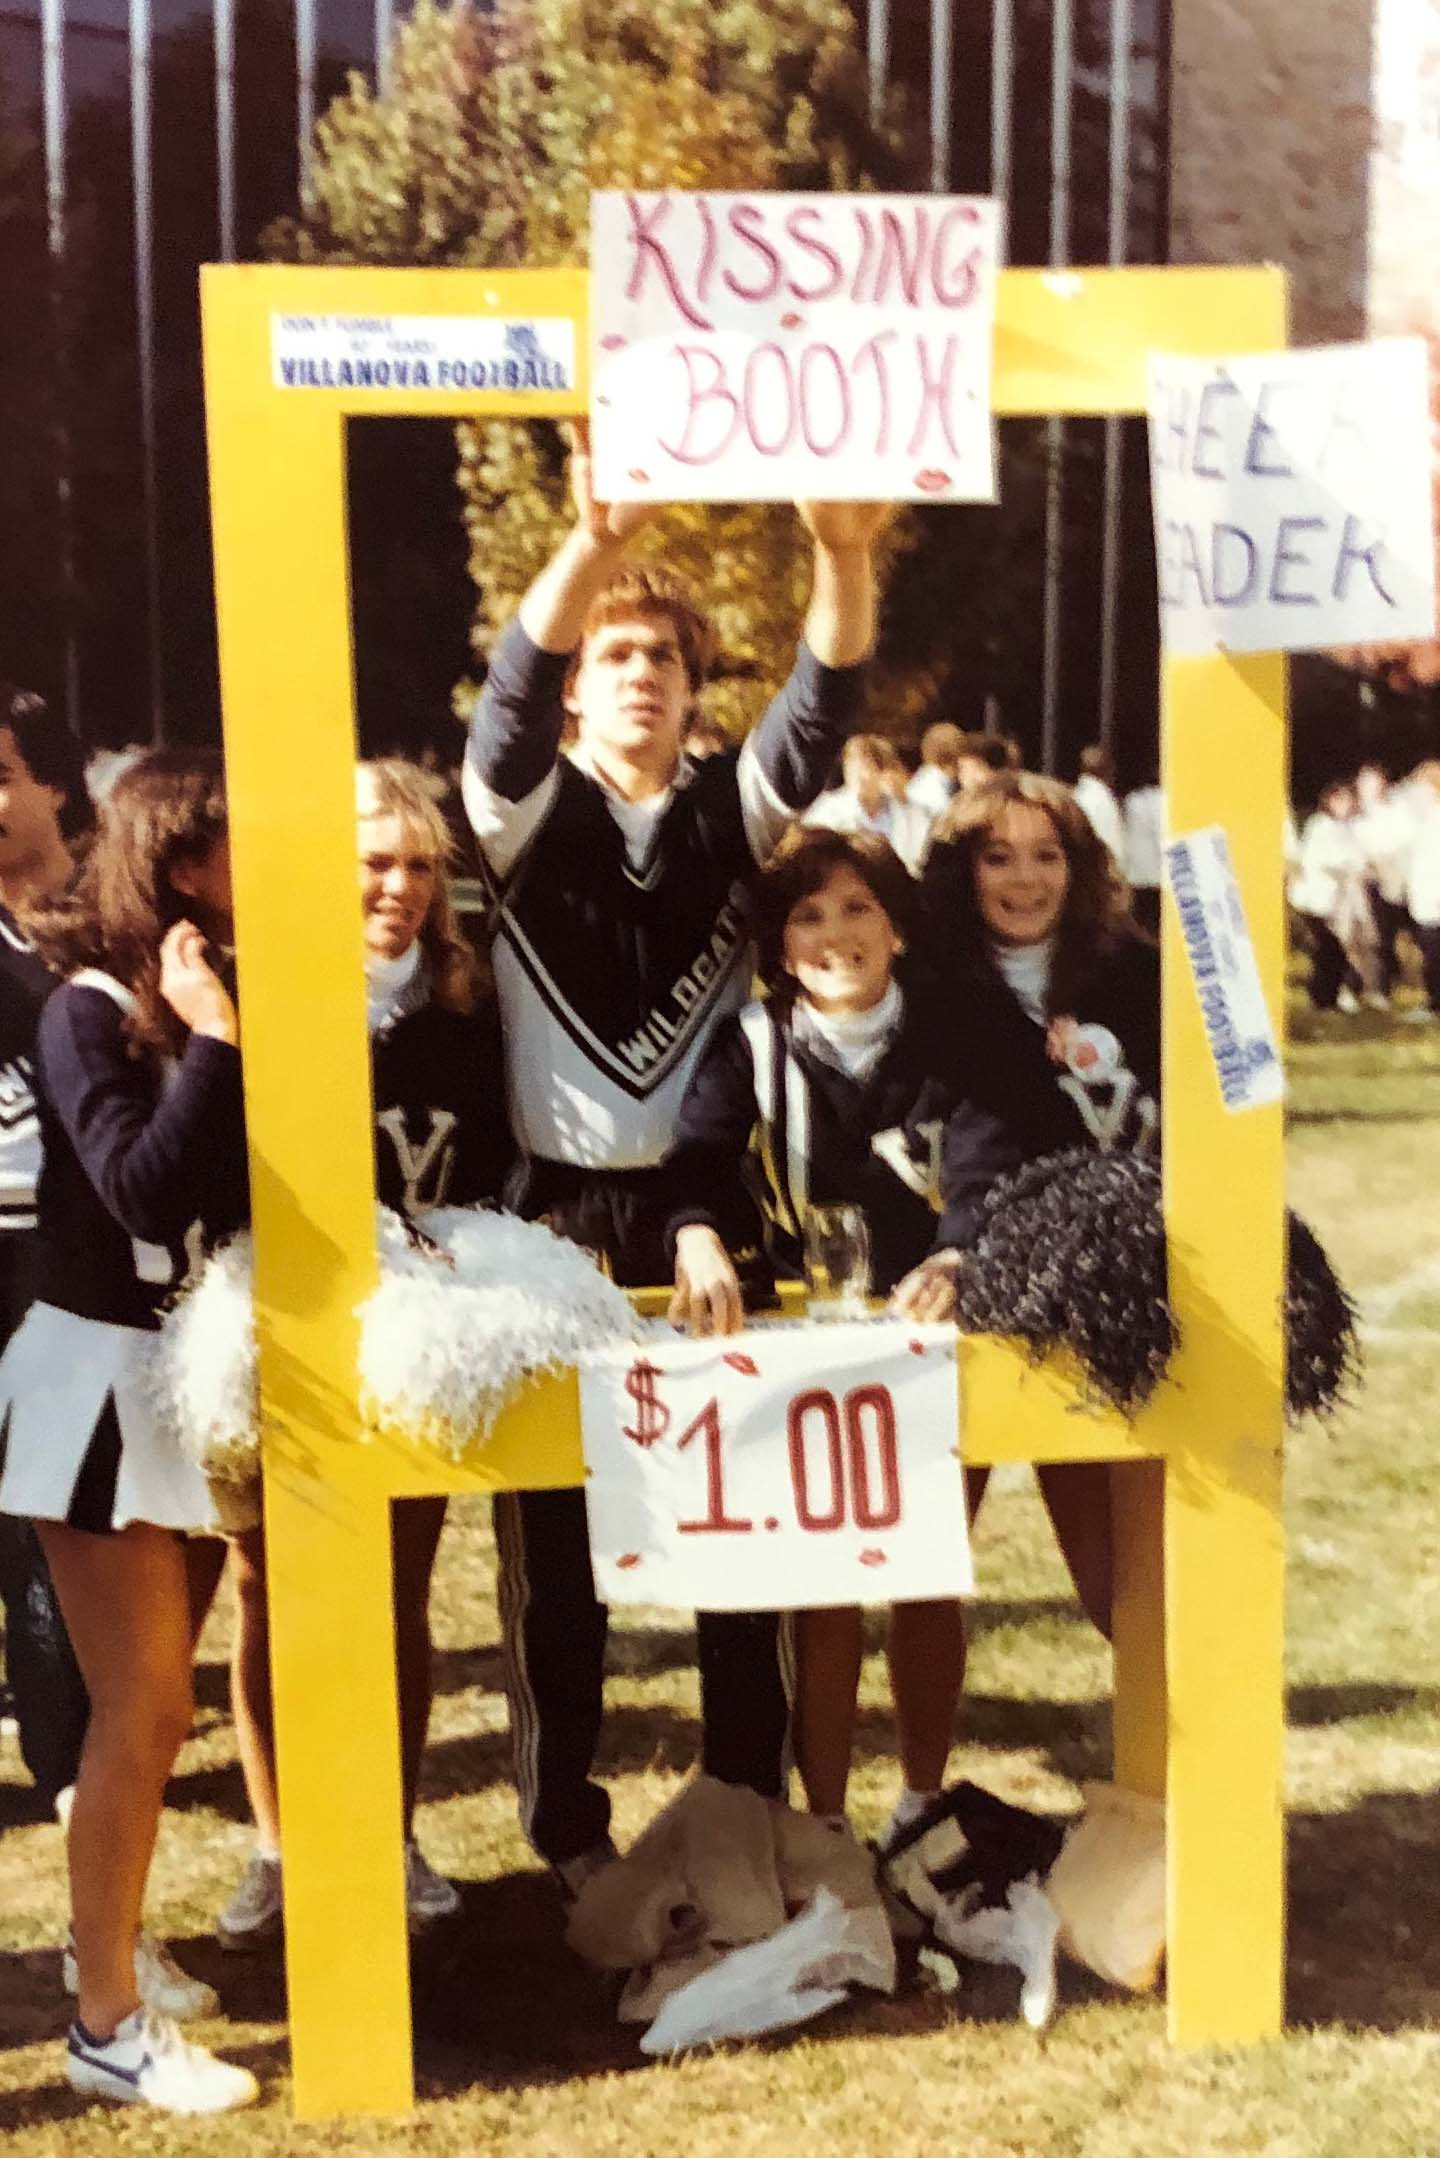 Kissing booth, 1983